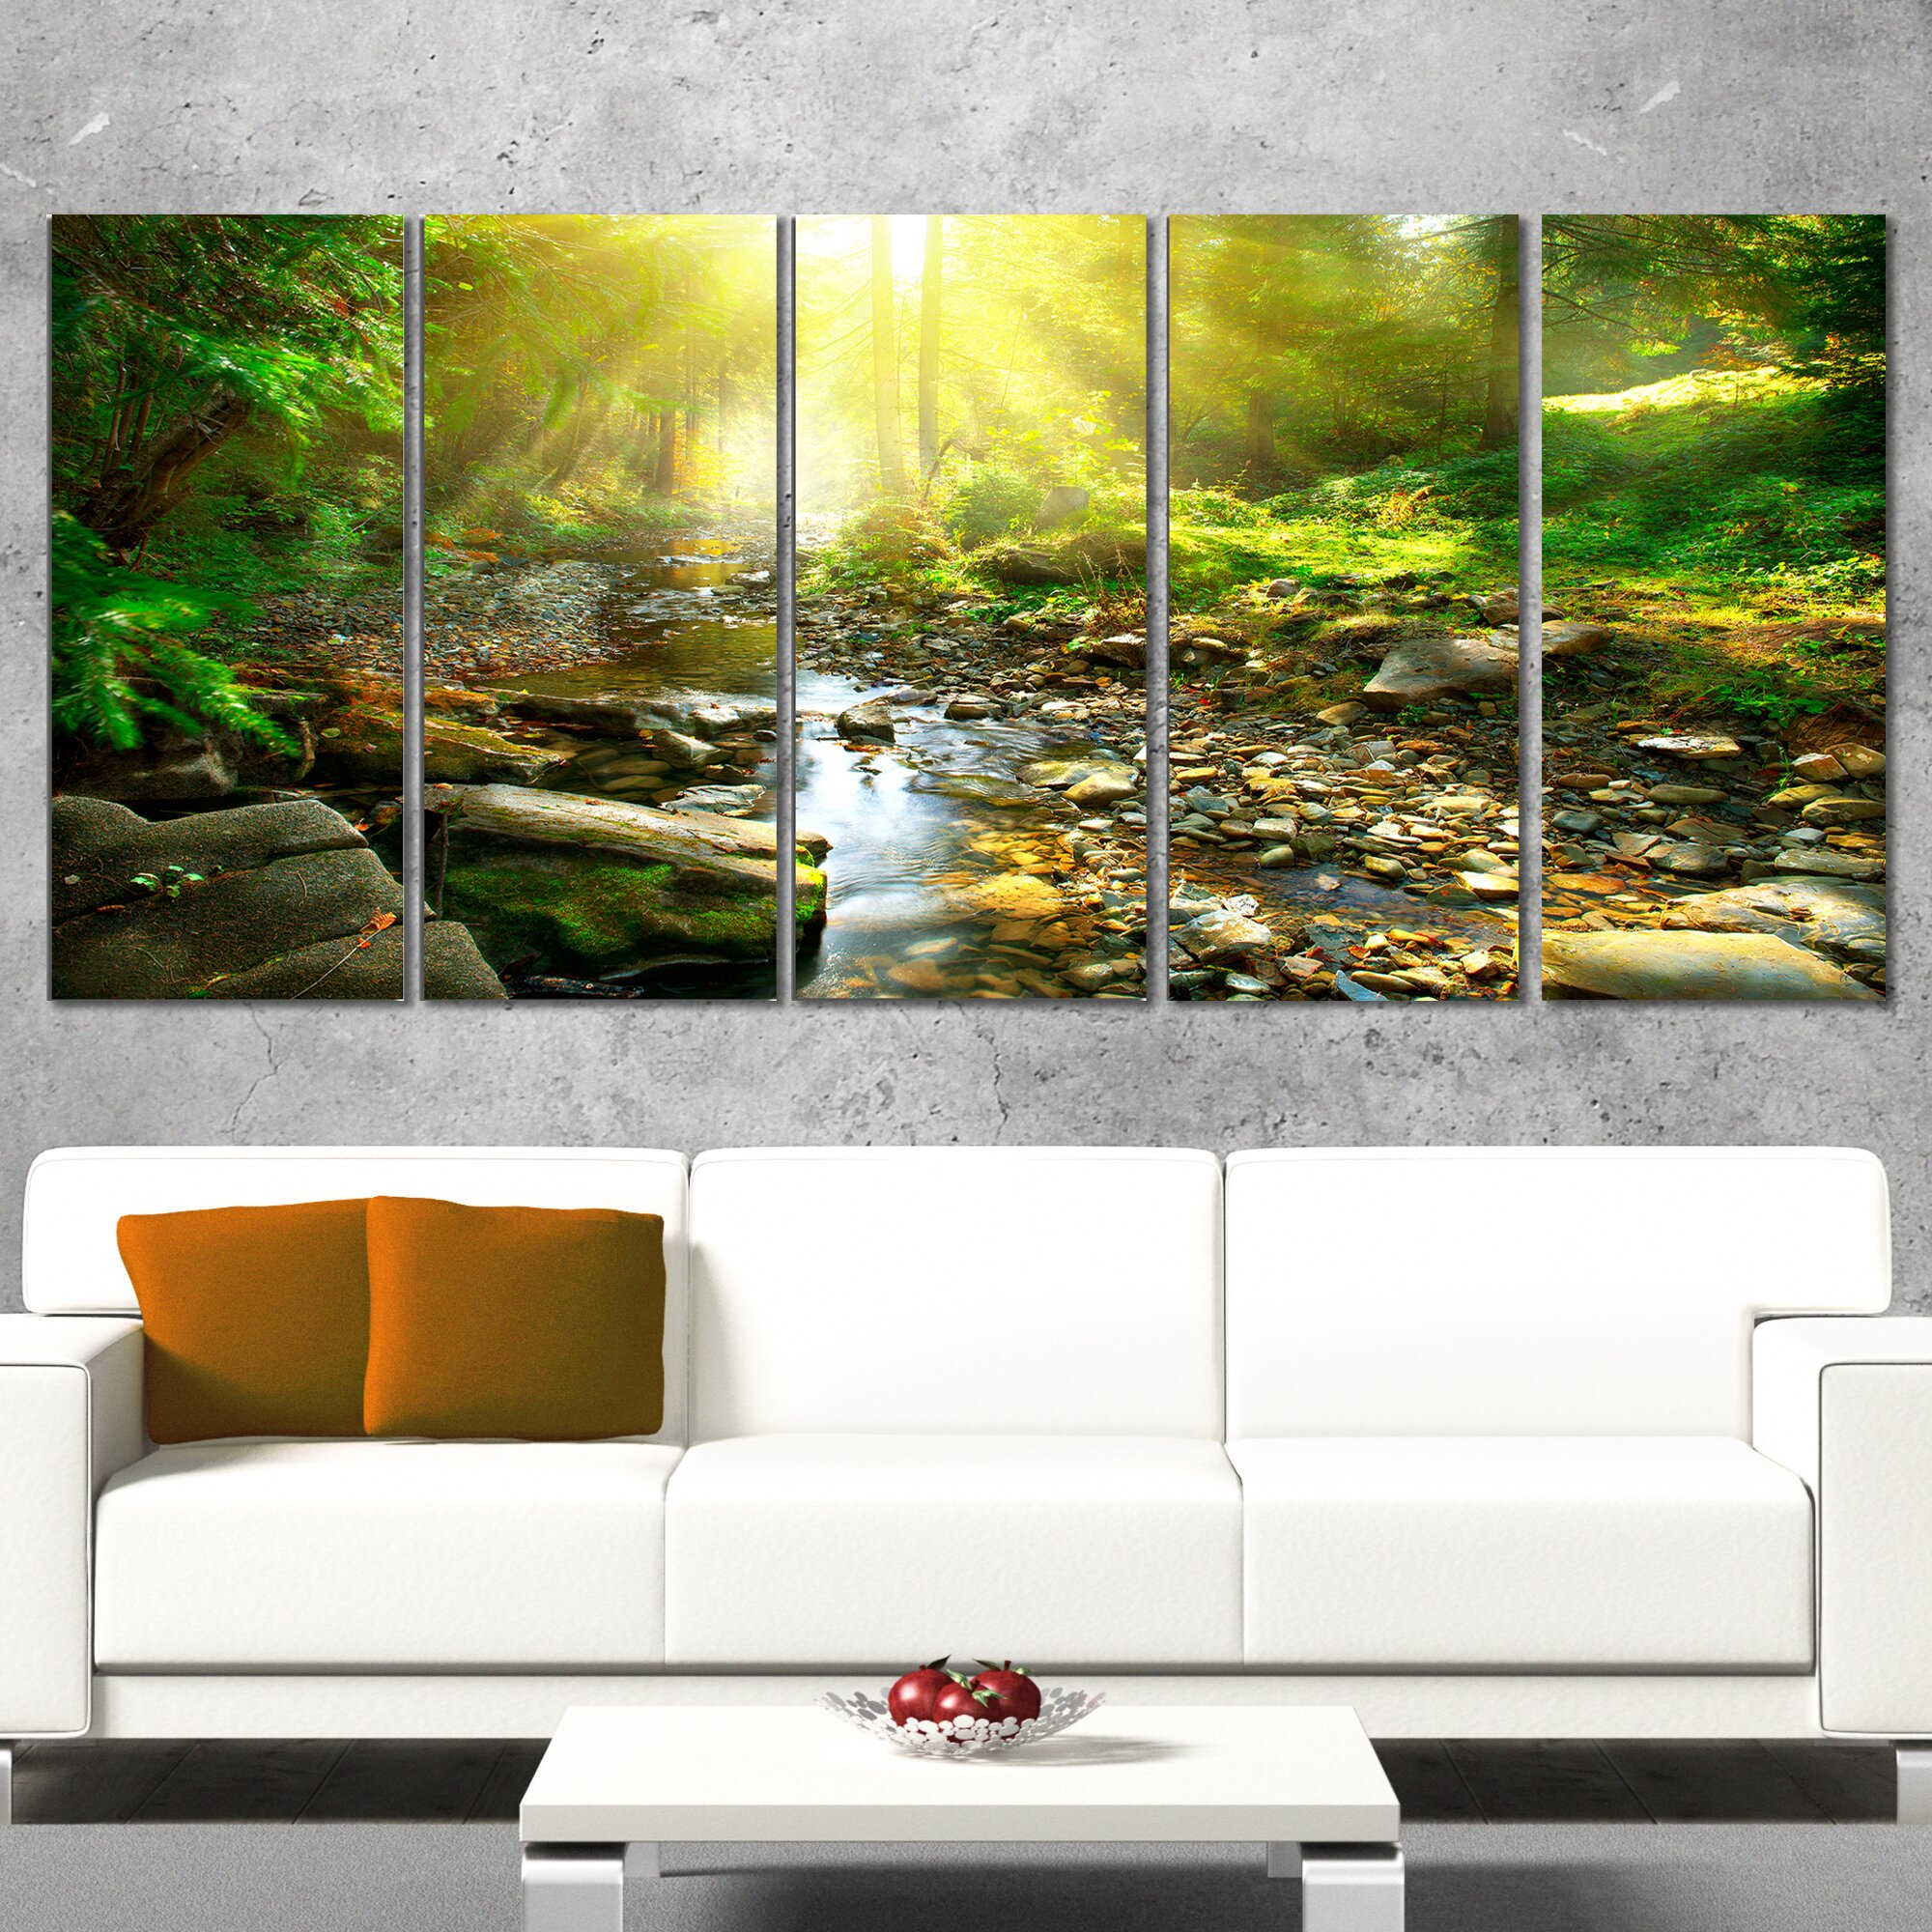 designart mountain stream in forest 5 piece wall art on wrapped canvas set wayfair. Black Bedroom Furniture Sets. Home Design Ideas